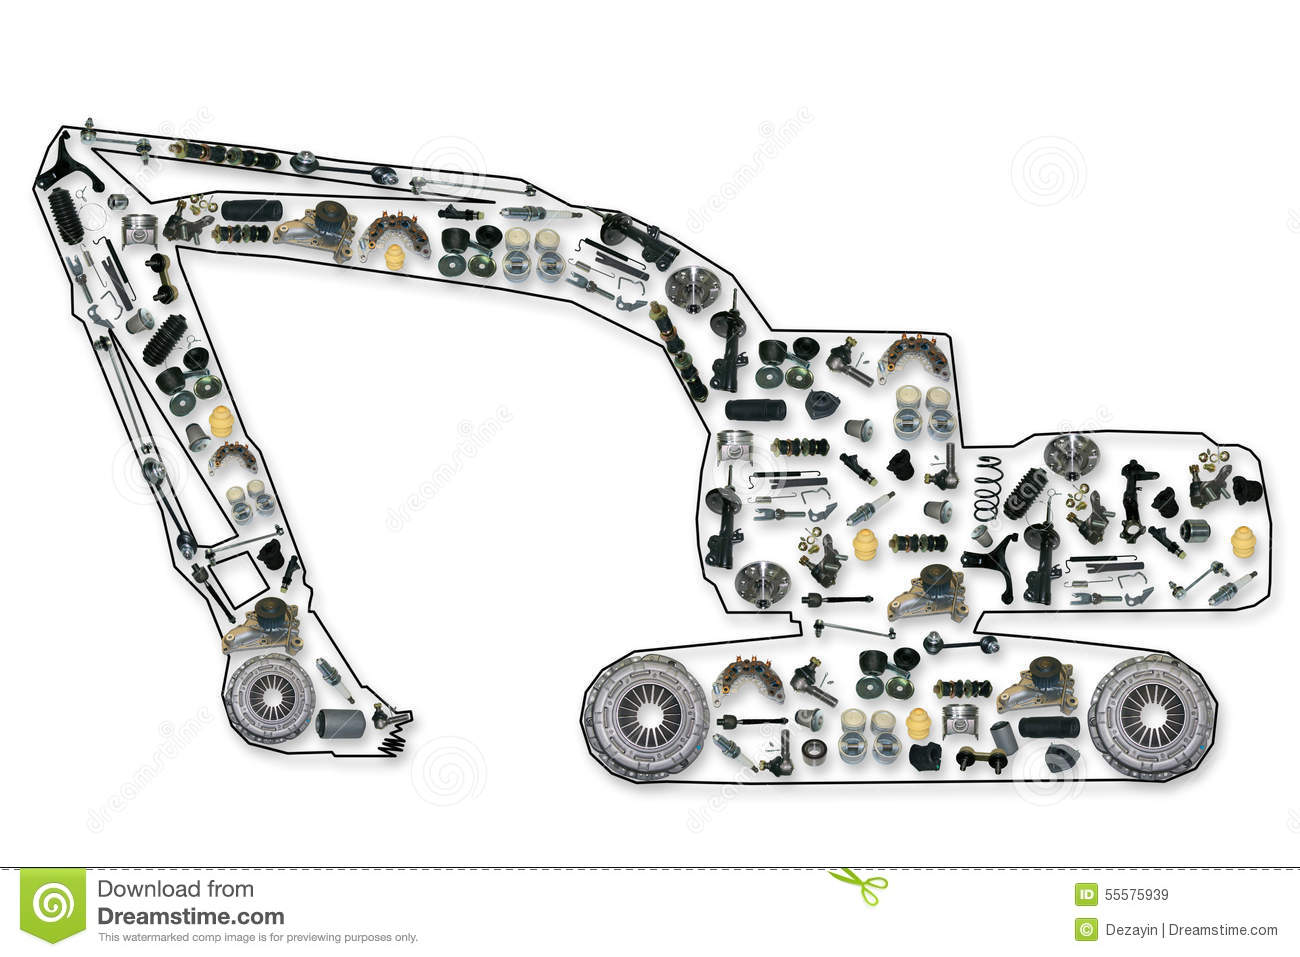 8747house blogspot moreover Stock Photo Spare Parts Truck Excavator Like Image55575939 besides IMG 20150119 170159869 zpsaphuniqn likewise Article 39da627c 8f31 11e6 9e15 7fad4d15d2b4 in addition Stock Photo Garage Hand Drawn Sketch Cartoon Illustration Image36304170. on 2 car garage with shop plans